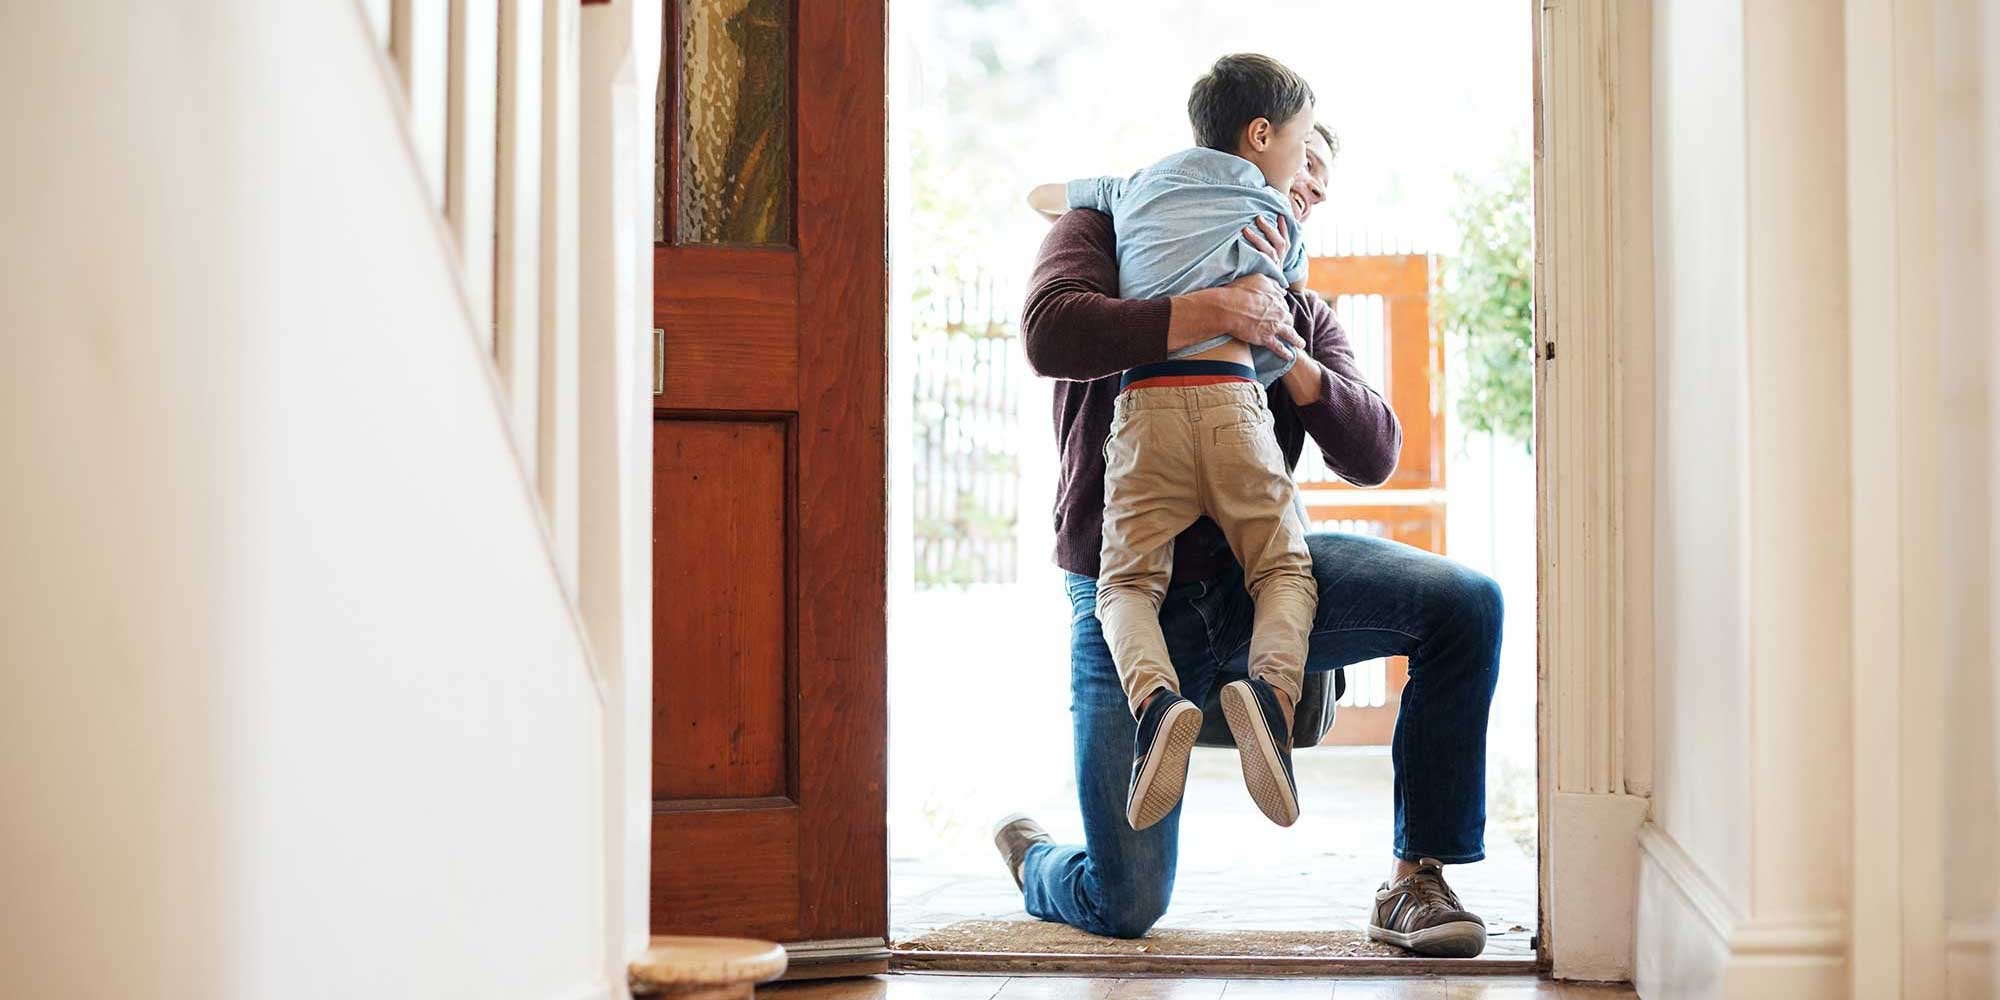 Let us help you find your way home.Lending to future homeowners and dreamers.